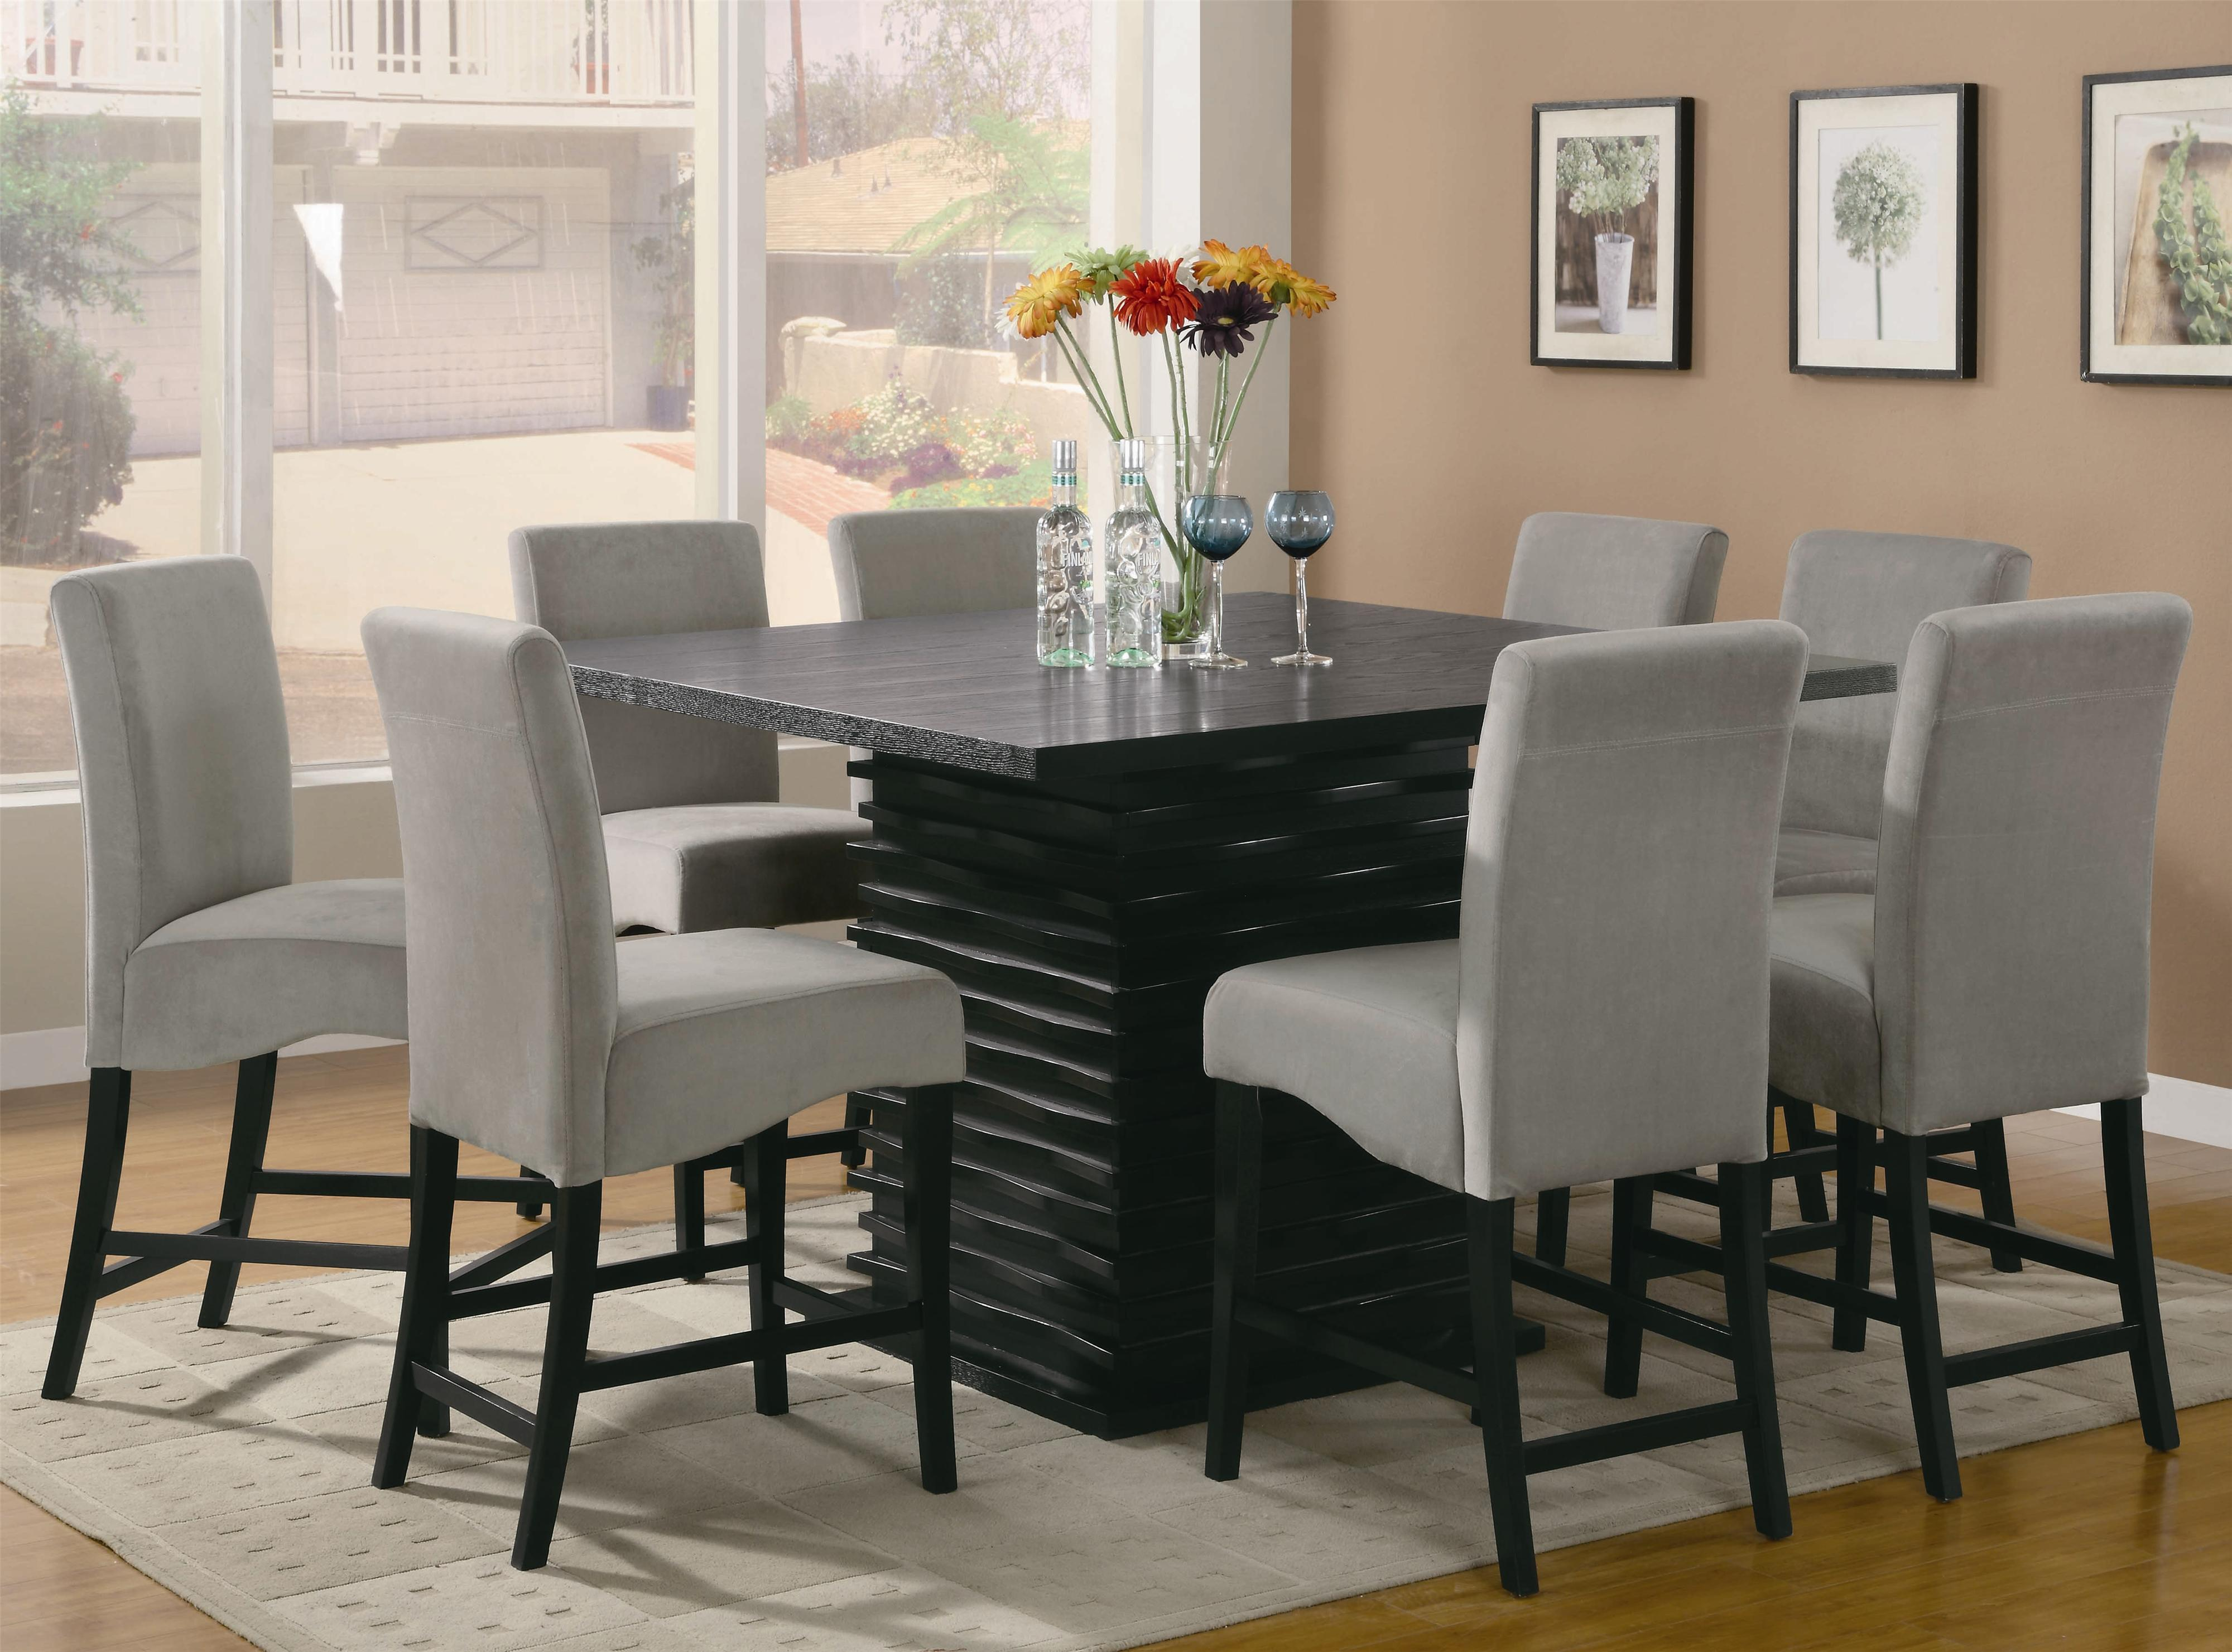 Coaster Stanton 9 Piece Table And Chair Set Standard Furniture Pub Table And Stool Sets